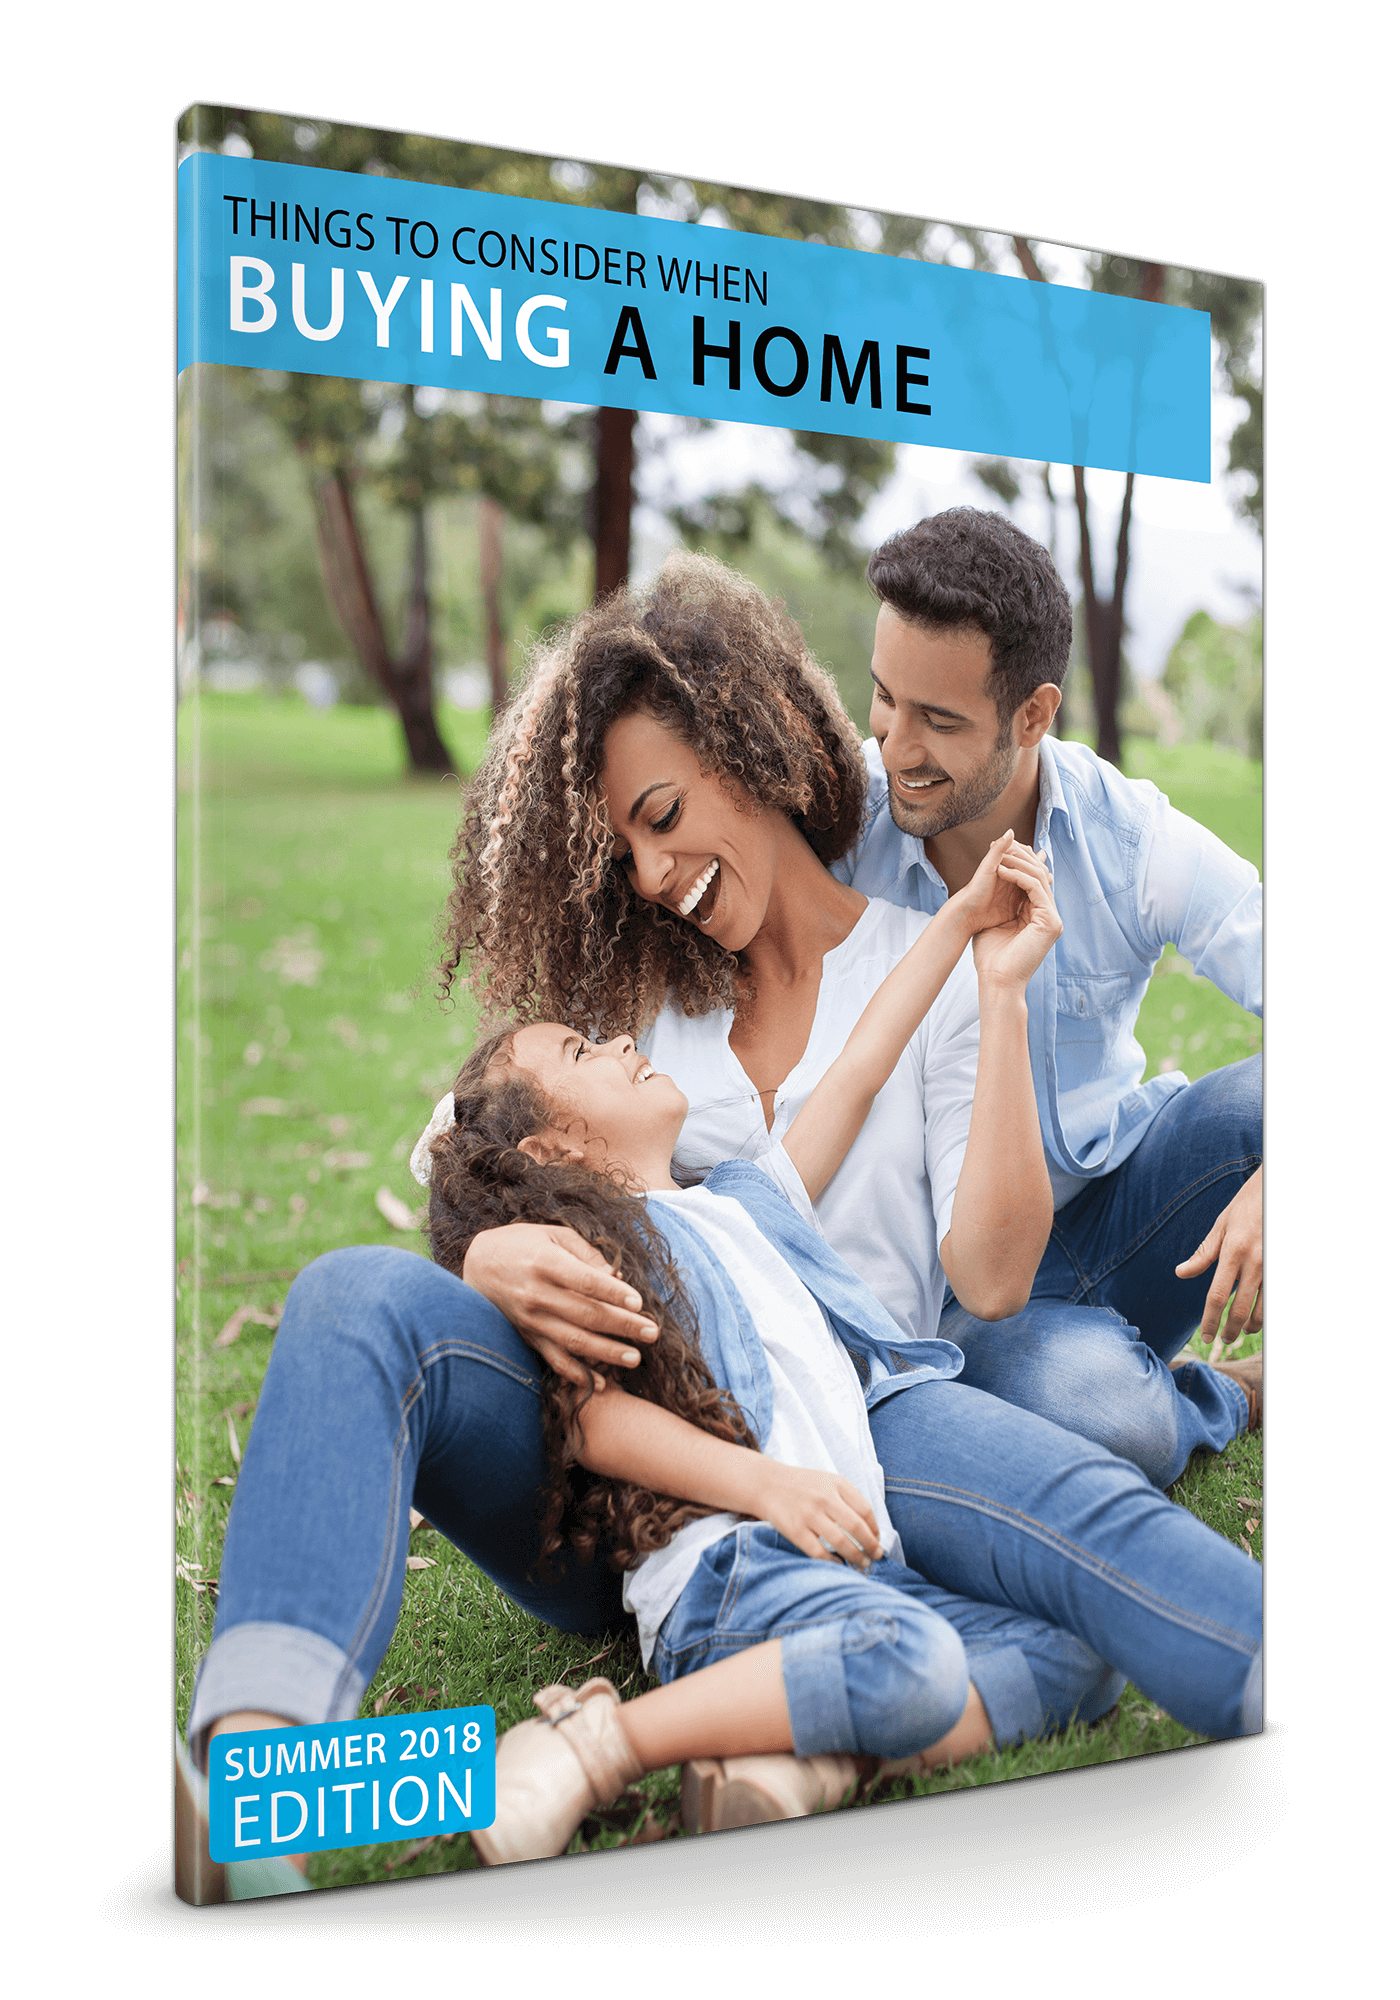 Home Buyer's Guide Summer 2018 Edition